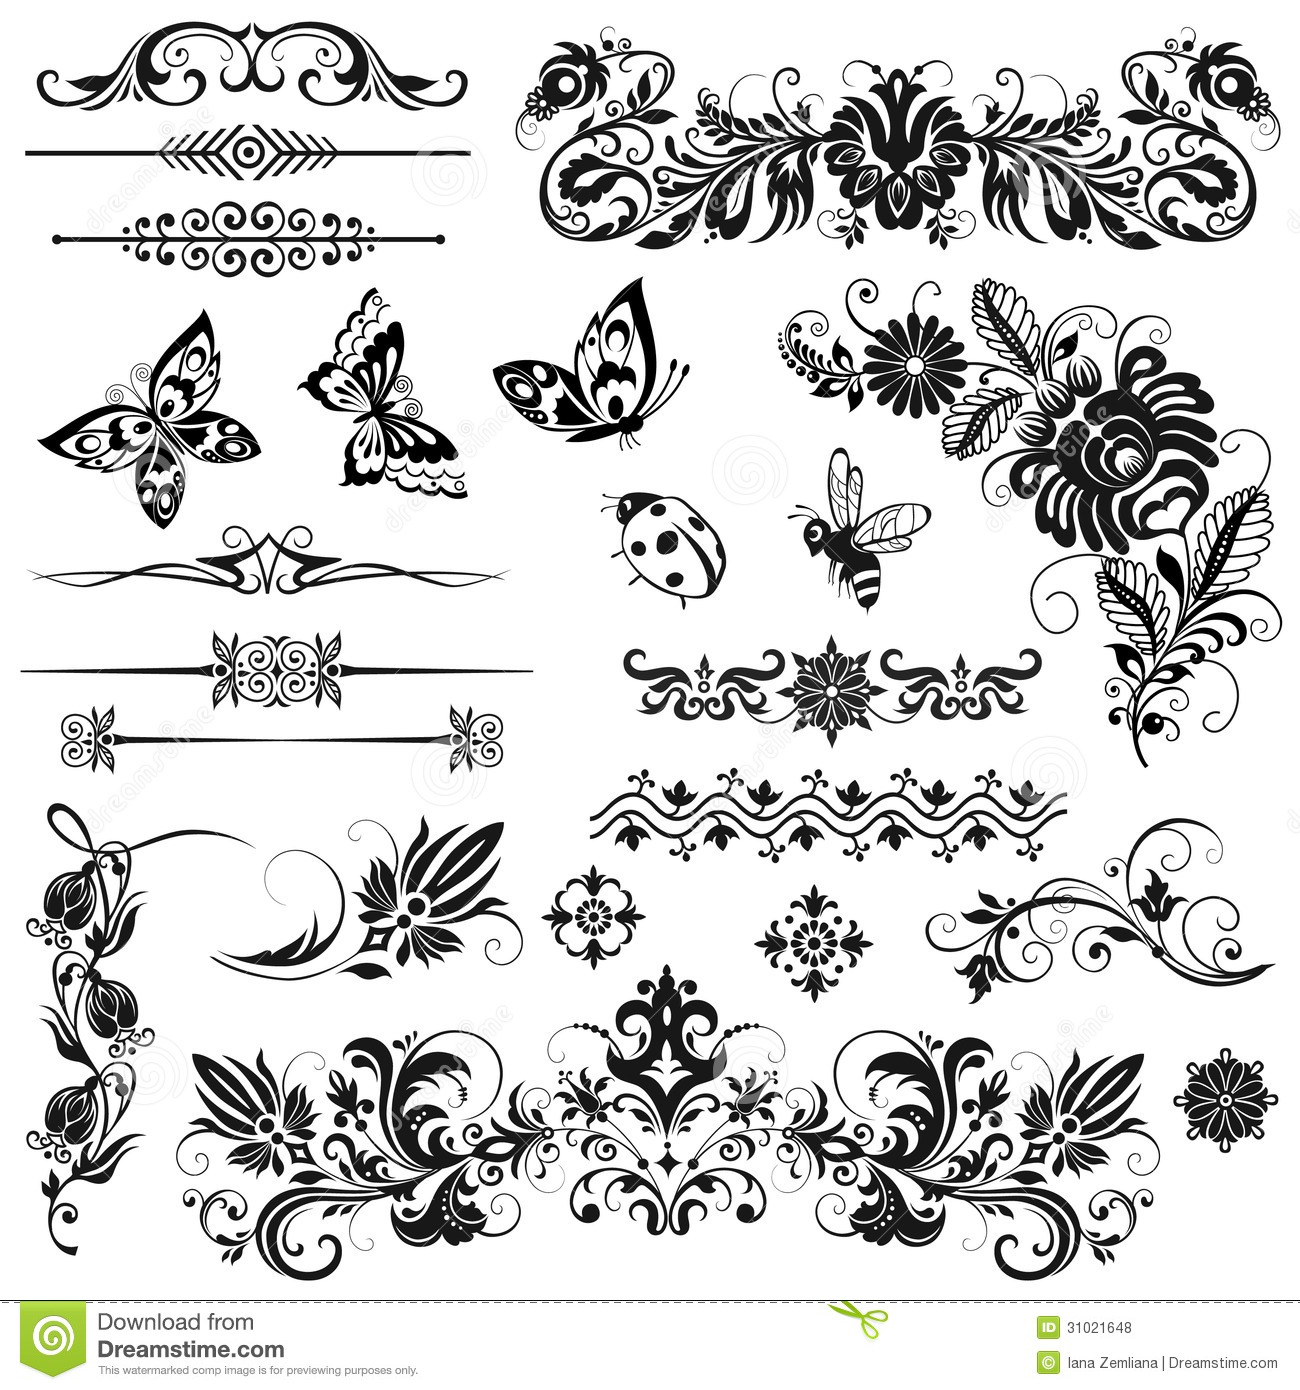 Elements For Design : Set of vector graphic elements royalty free stock photos